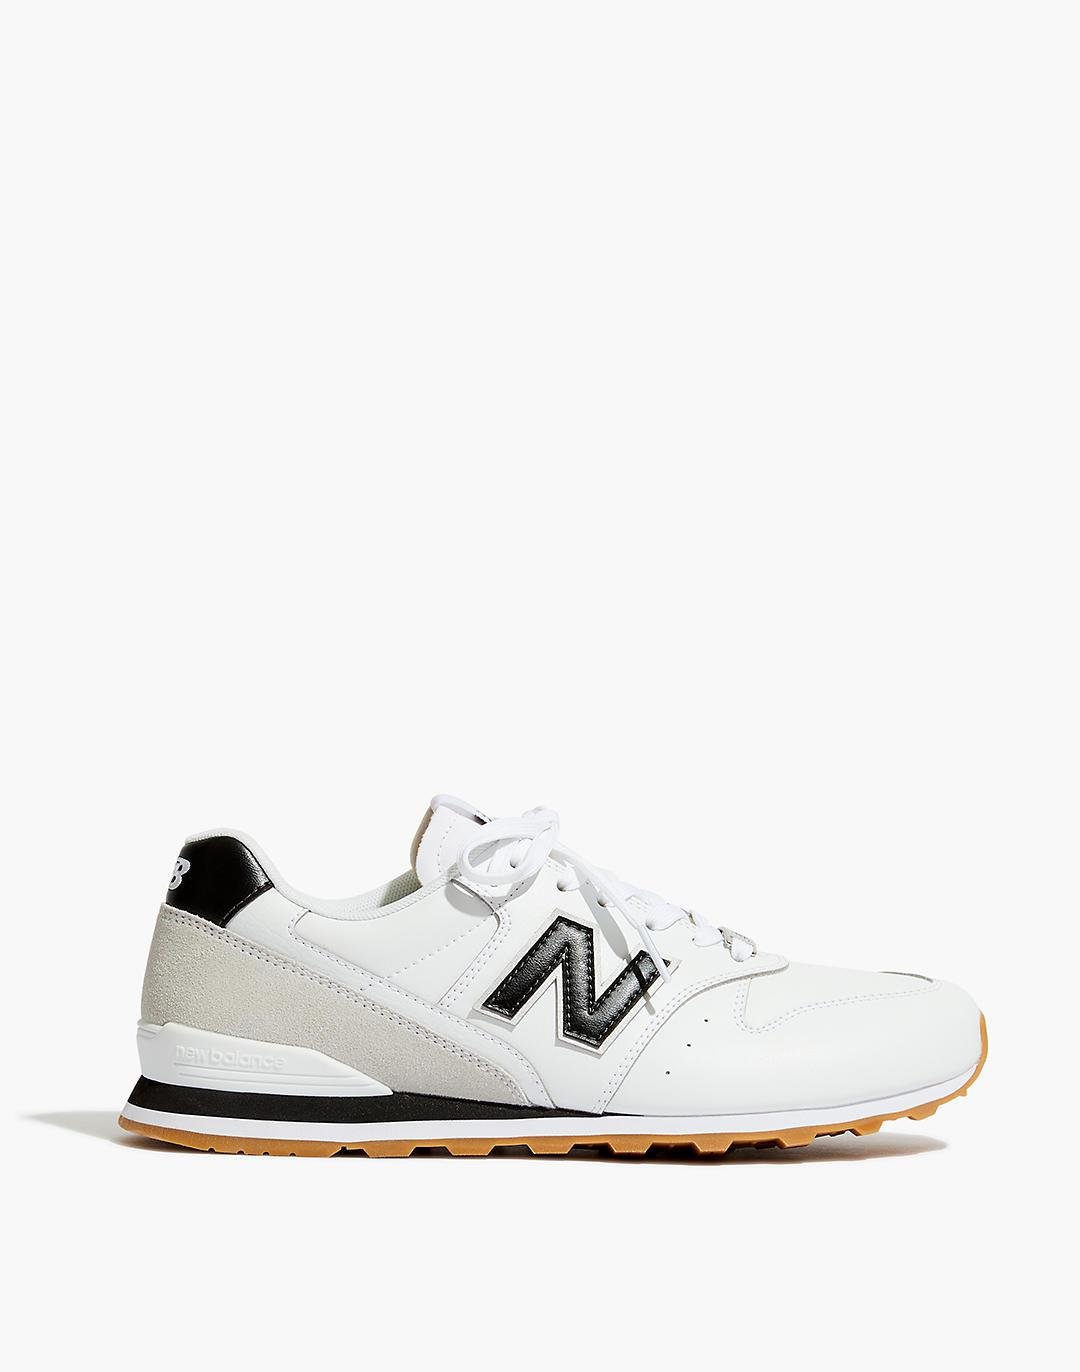 New Balance® 996 Sneakers in White and Black 1